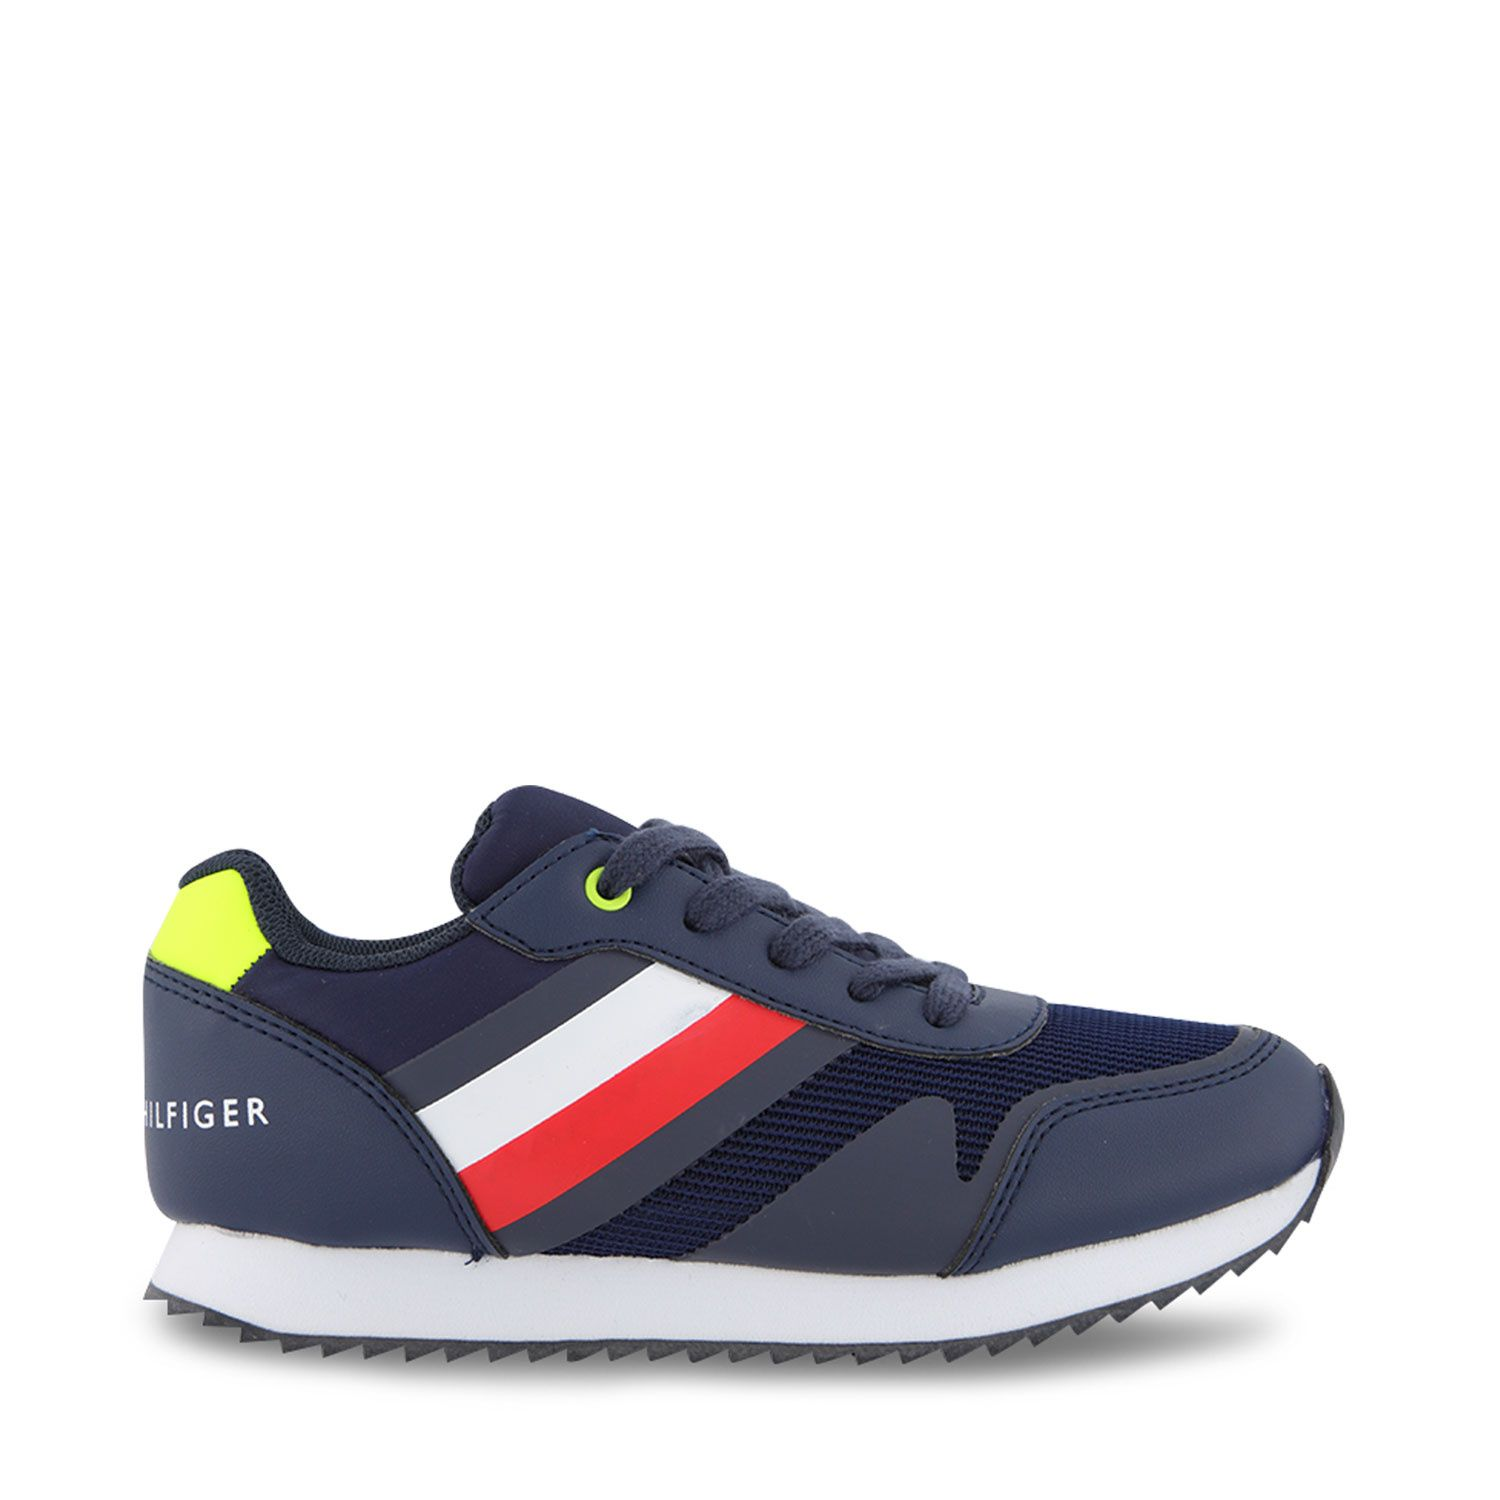 Picture of Tommy Hilfiger 31097 kids sneakers navy